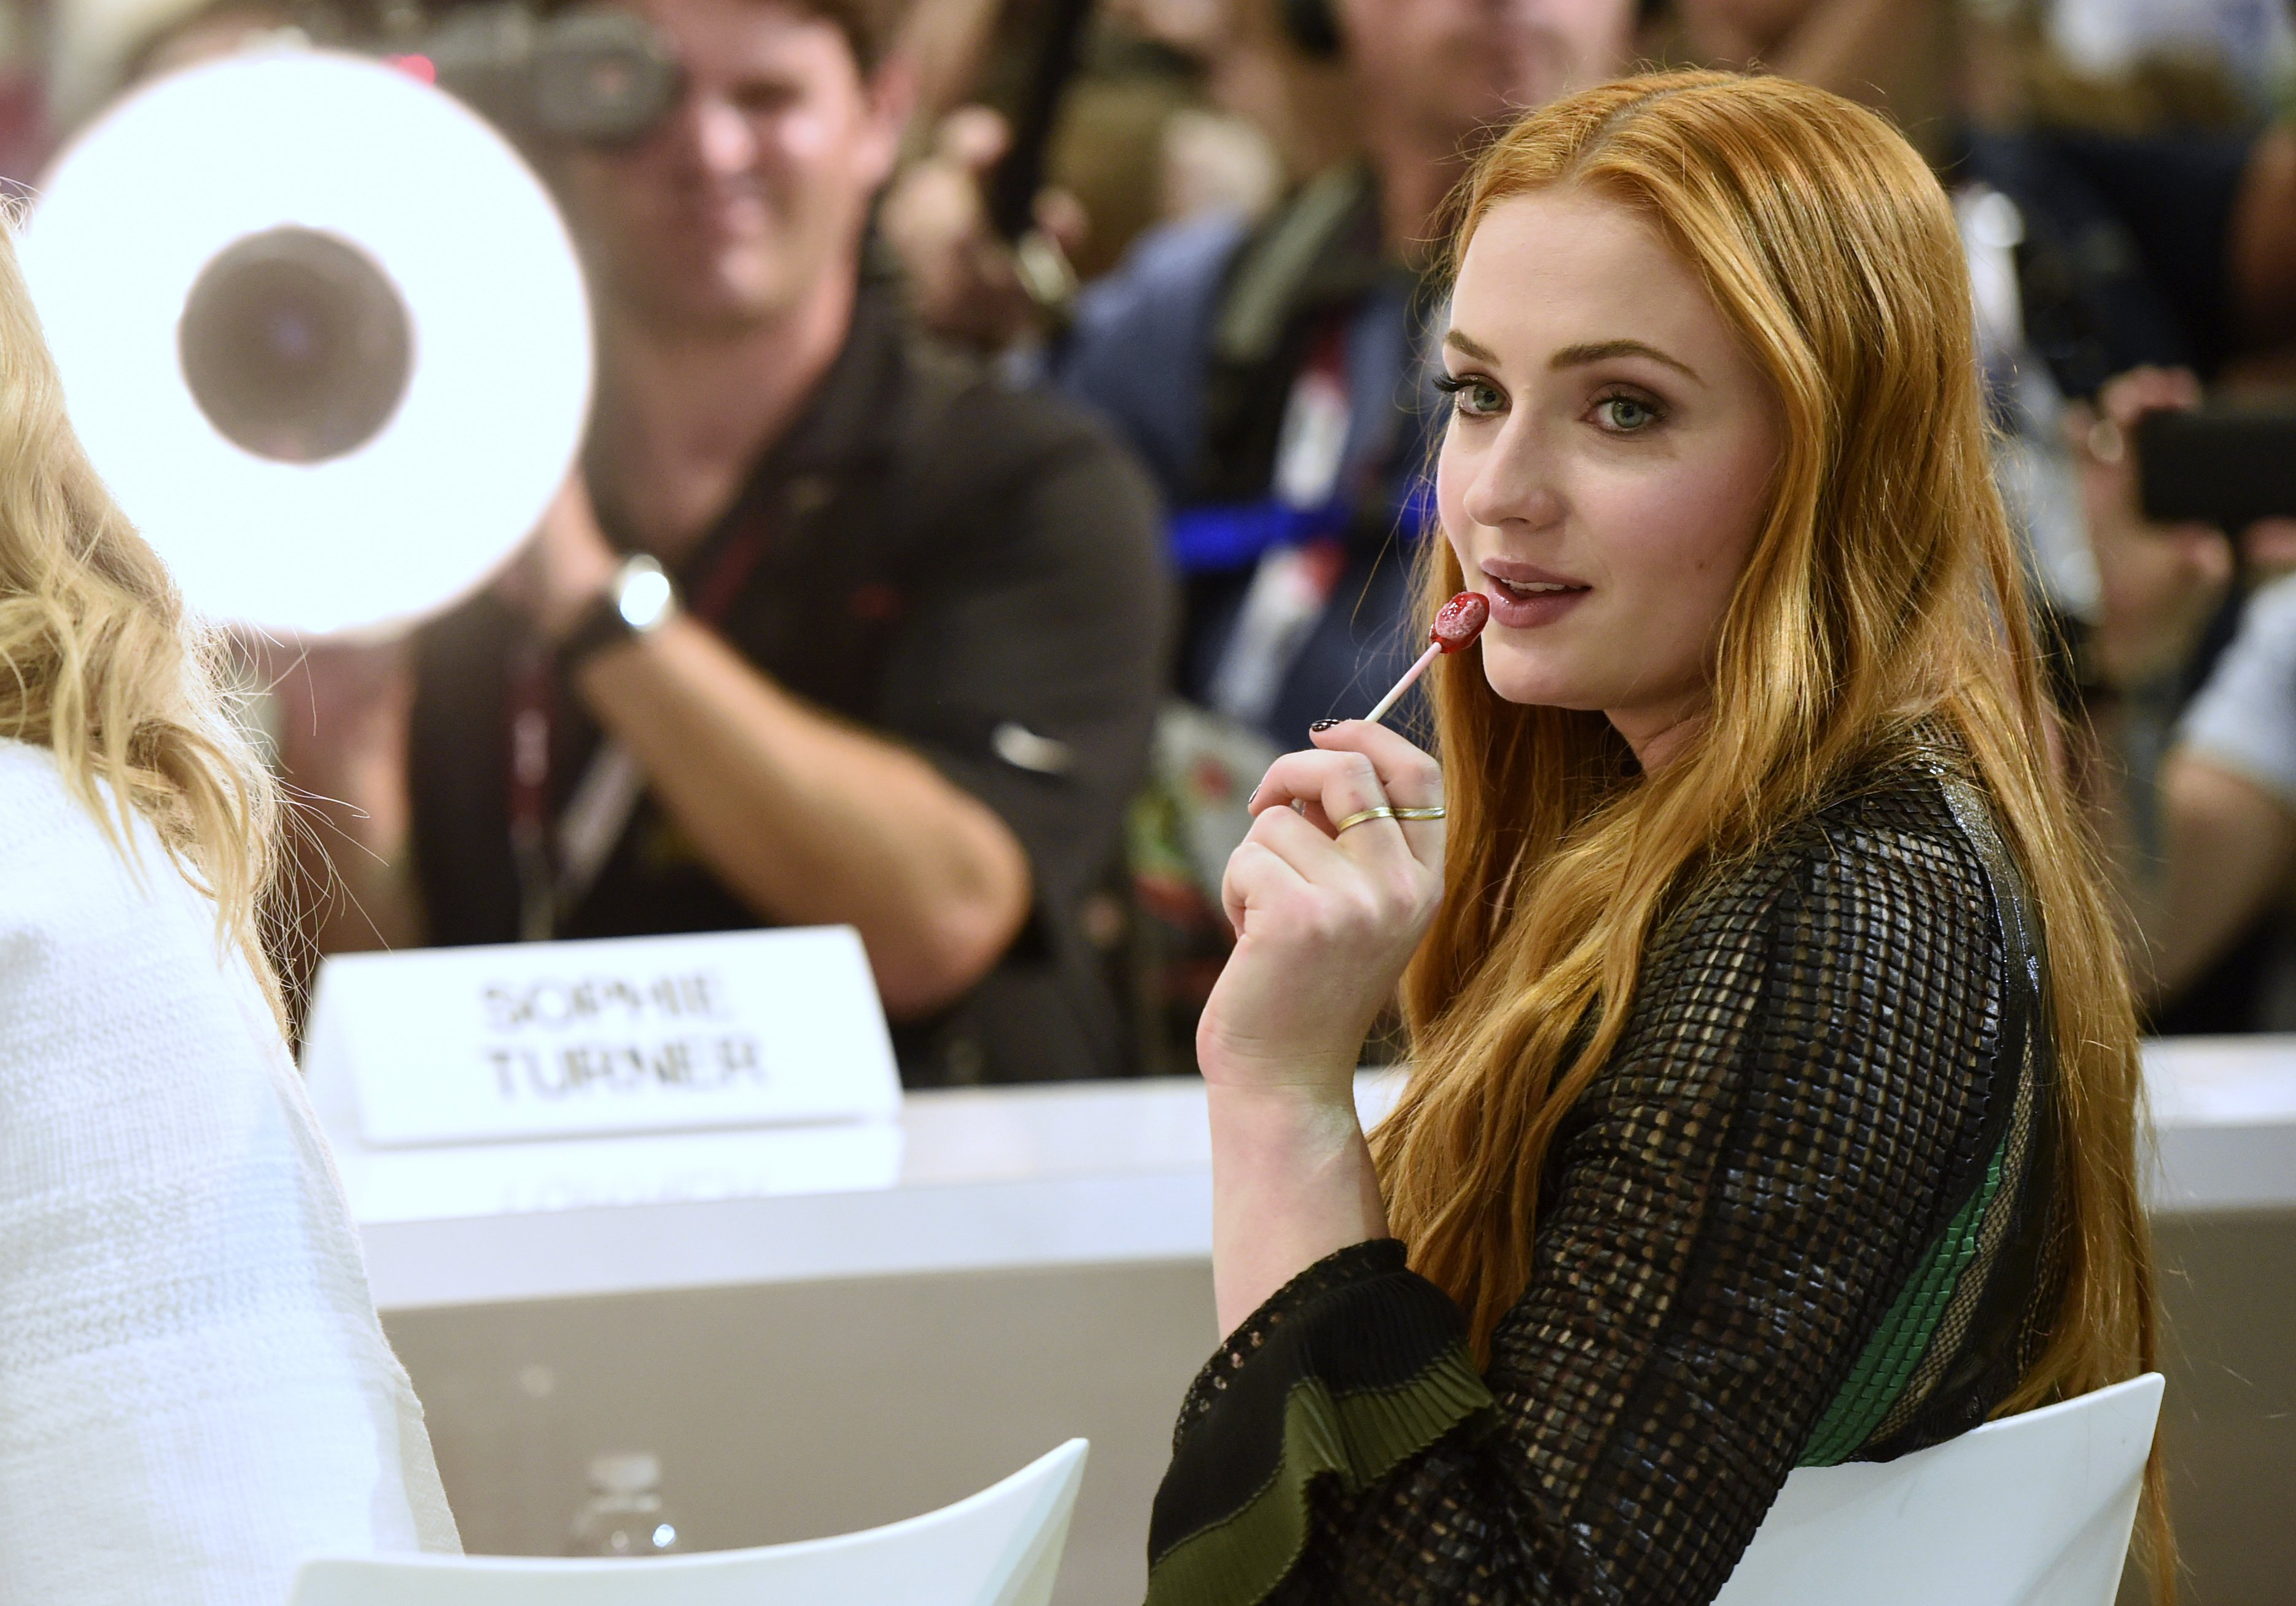 Sophie Turner at 2015 San Diego Comic Con